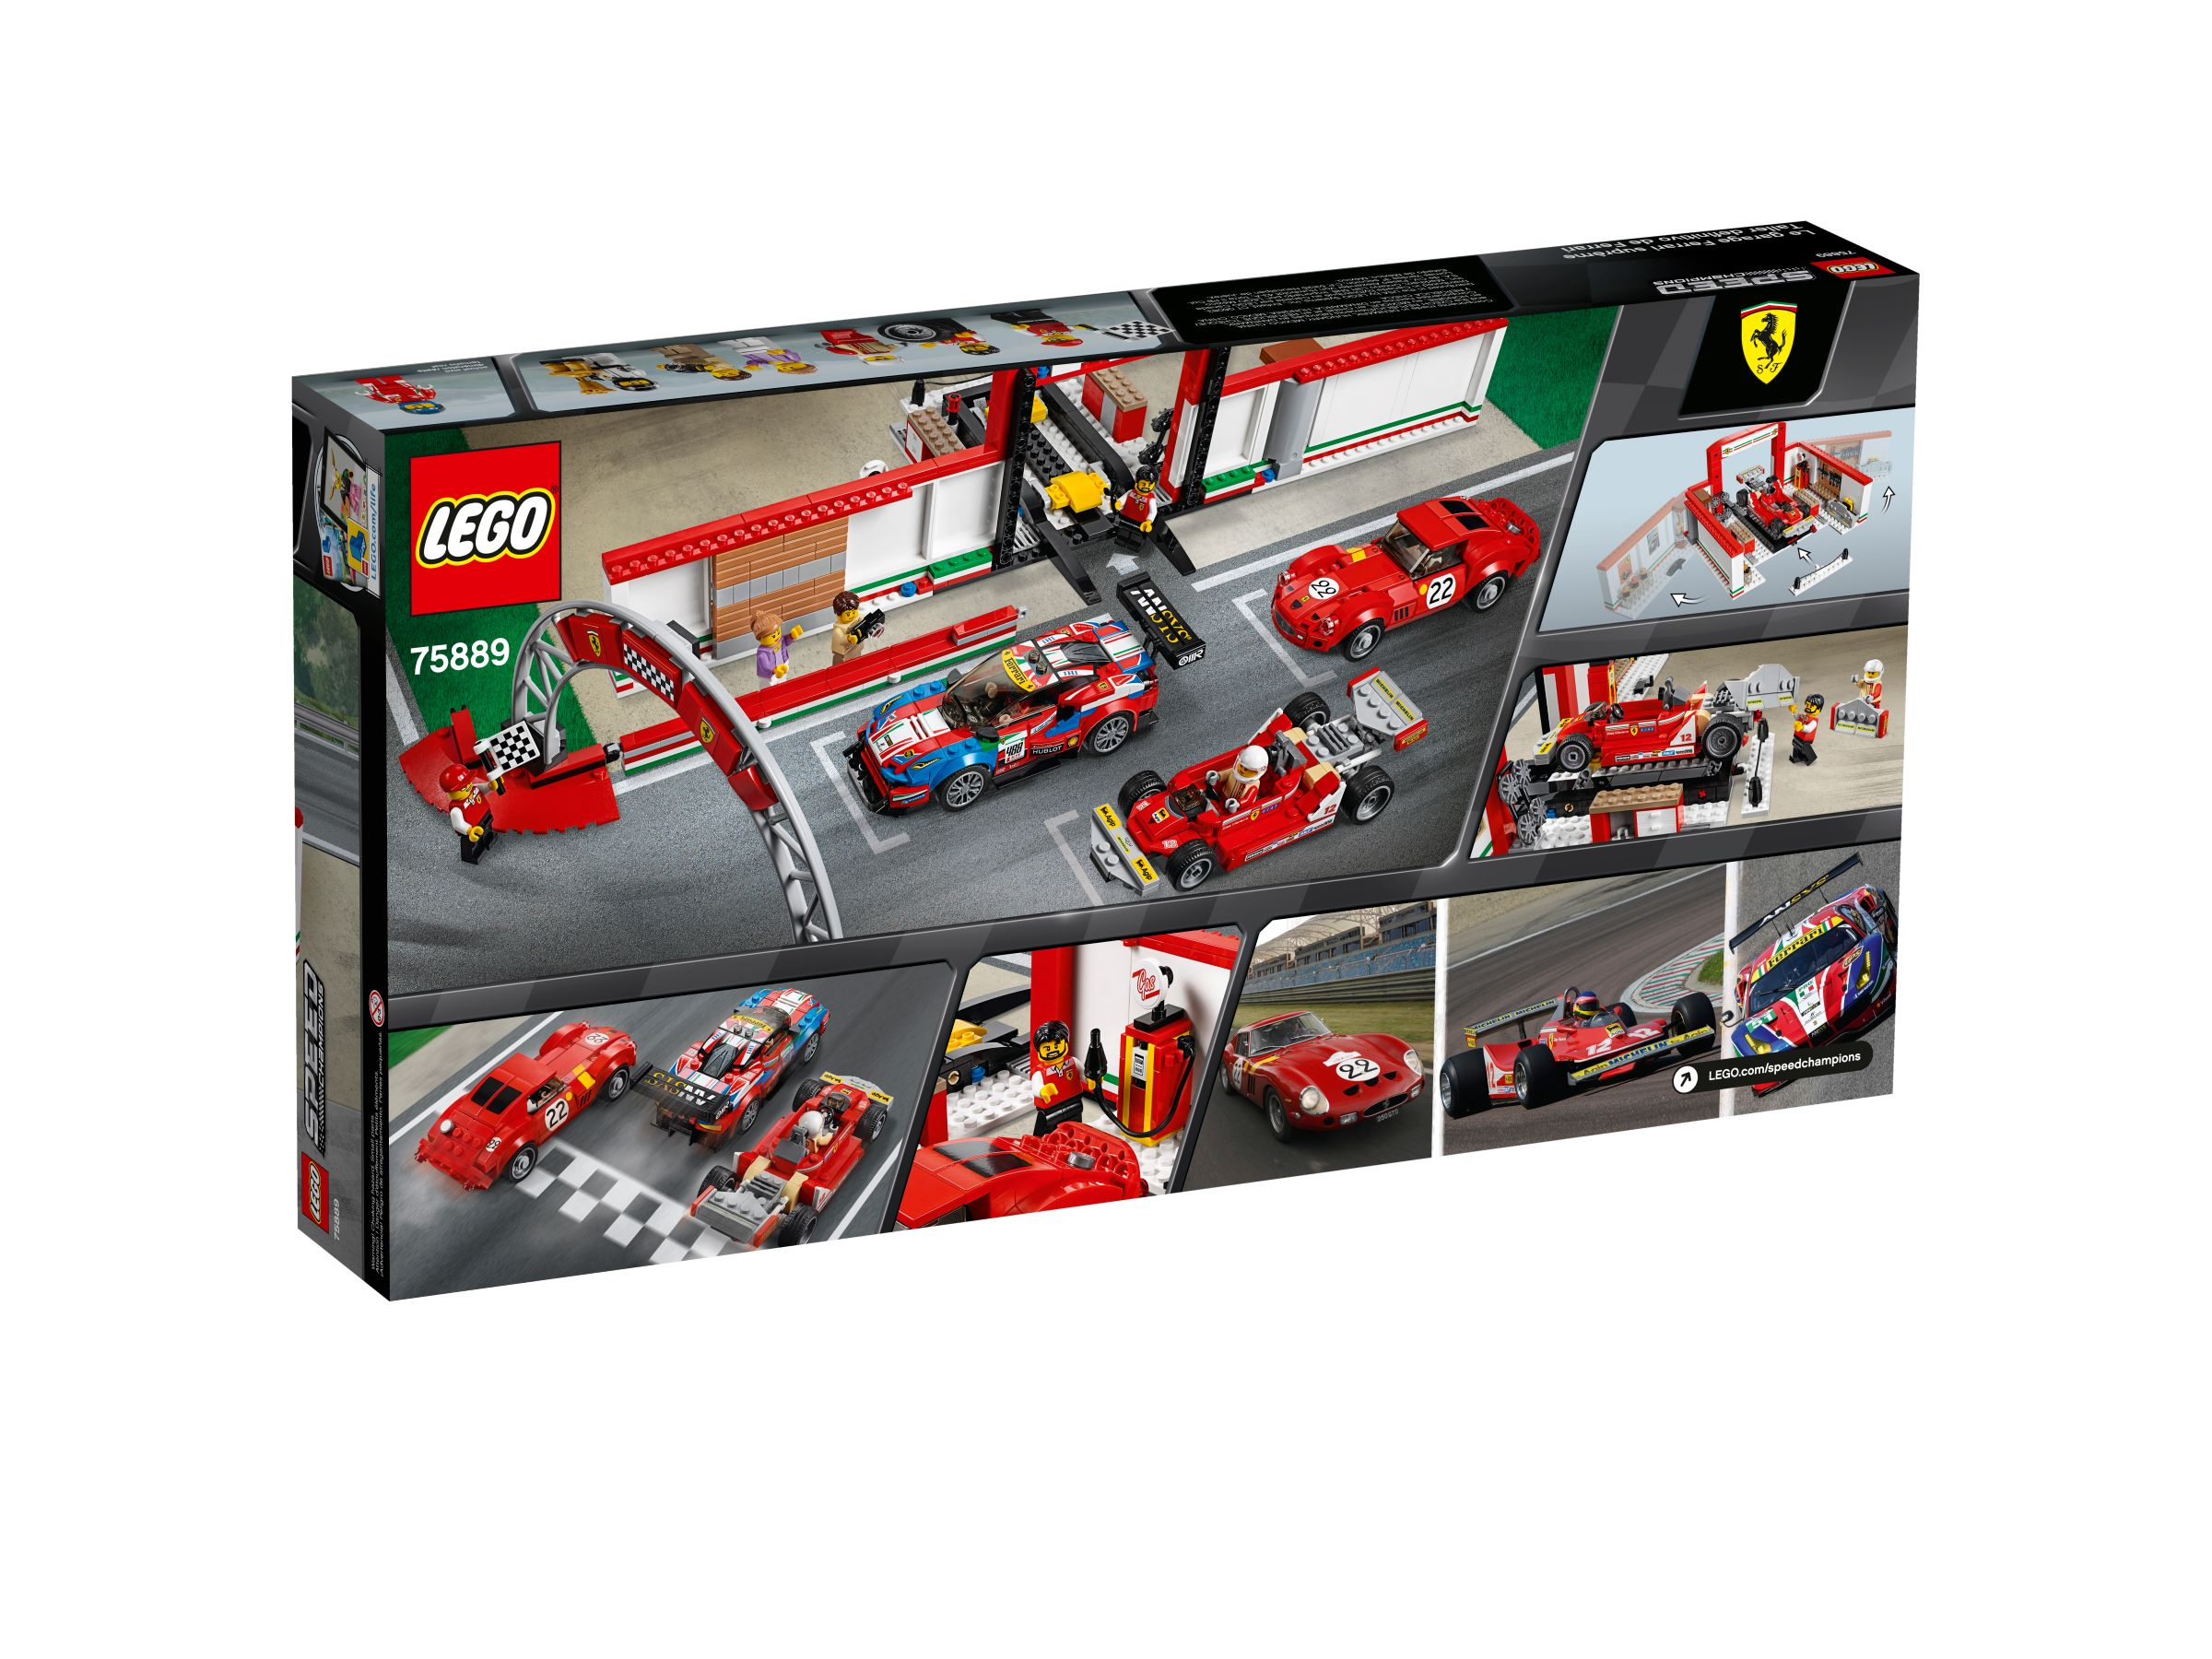 lego 75889 ferrari garage ferrari 250 gto ferrari 488 gt speed champions 2018 ab 72 97. Black Bedroom Furniture Sets. Home Design Ideas